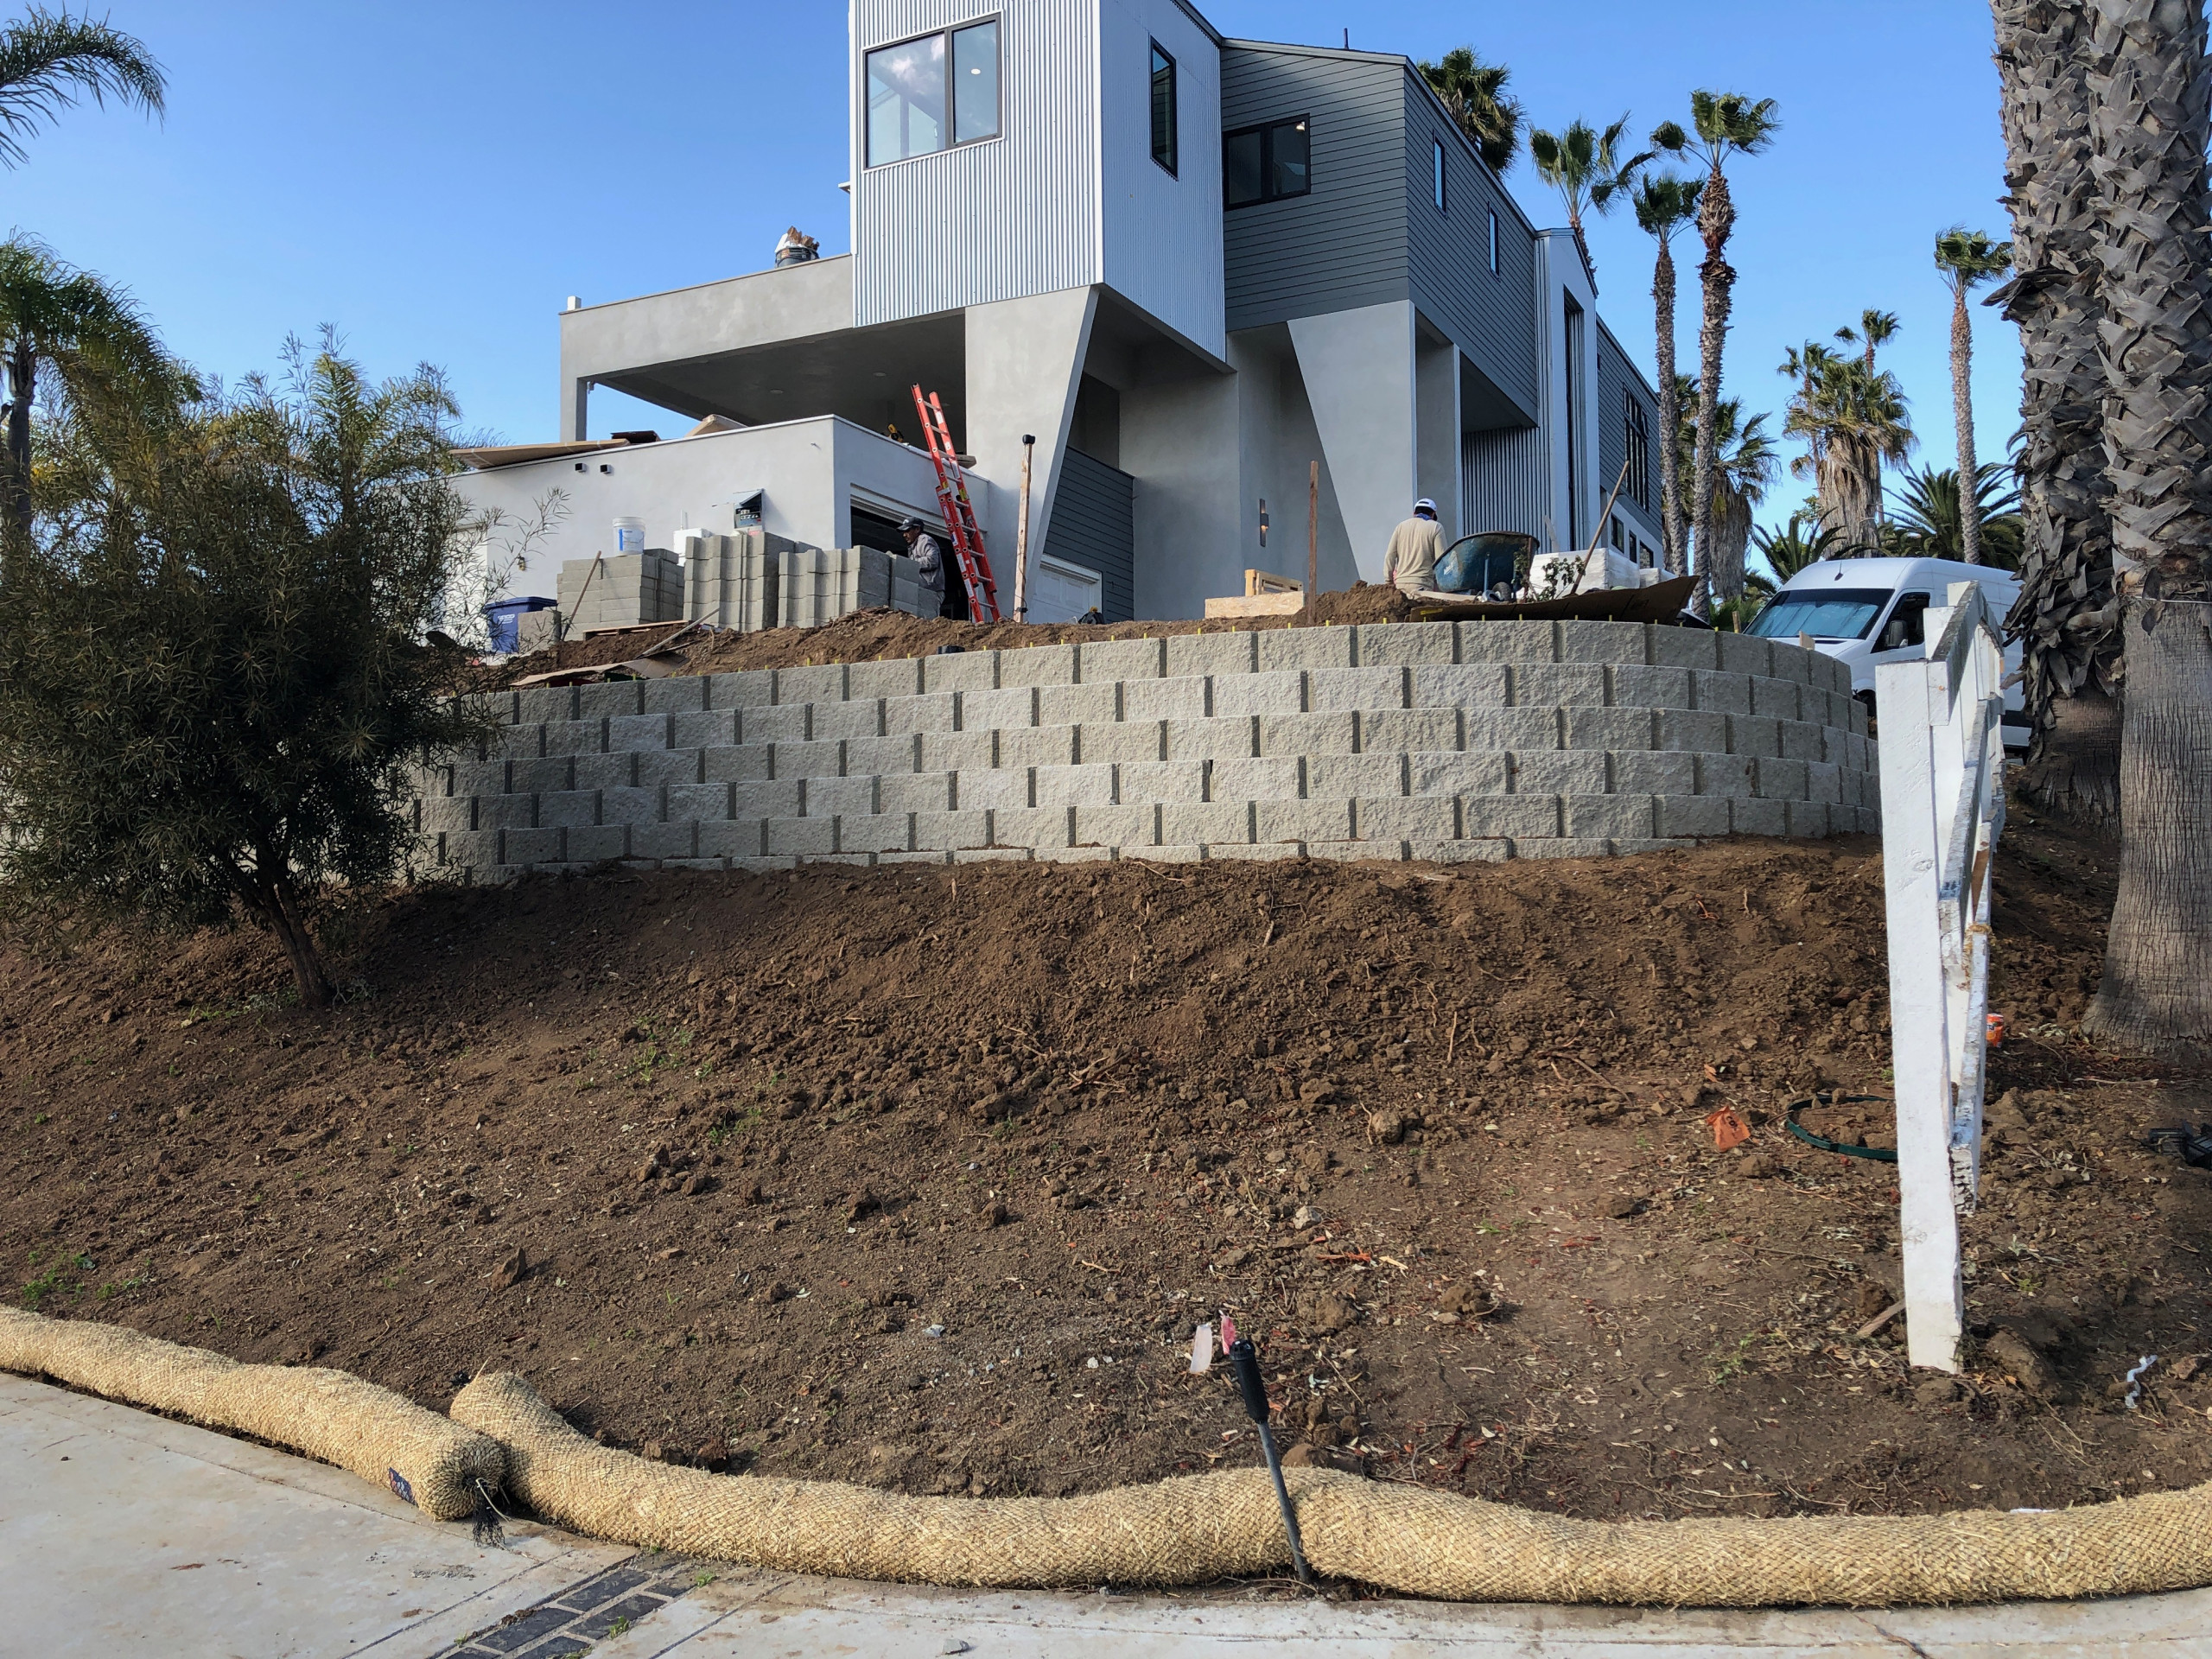 Installing Two Large Retaining Walls on a Slope